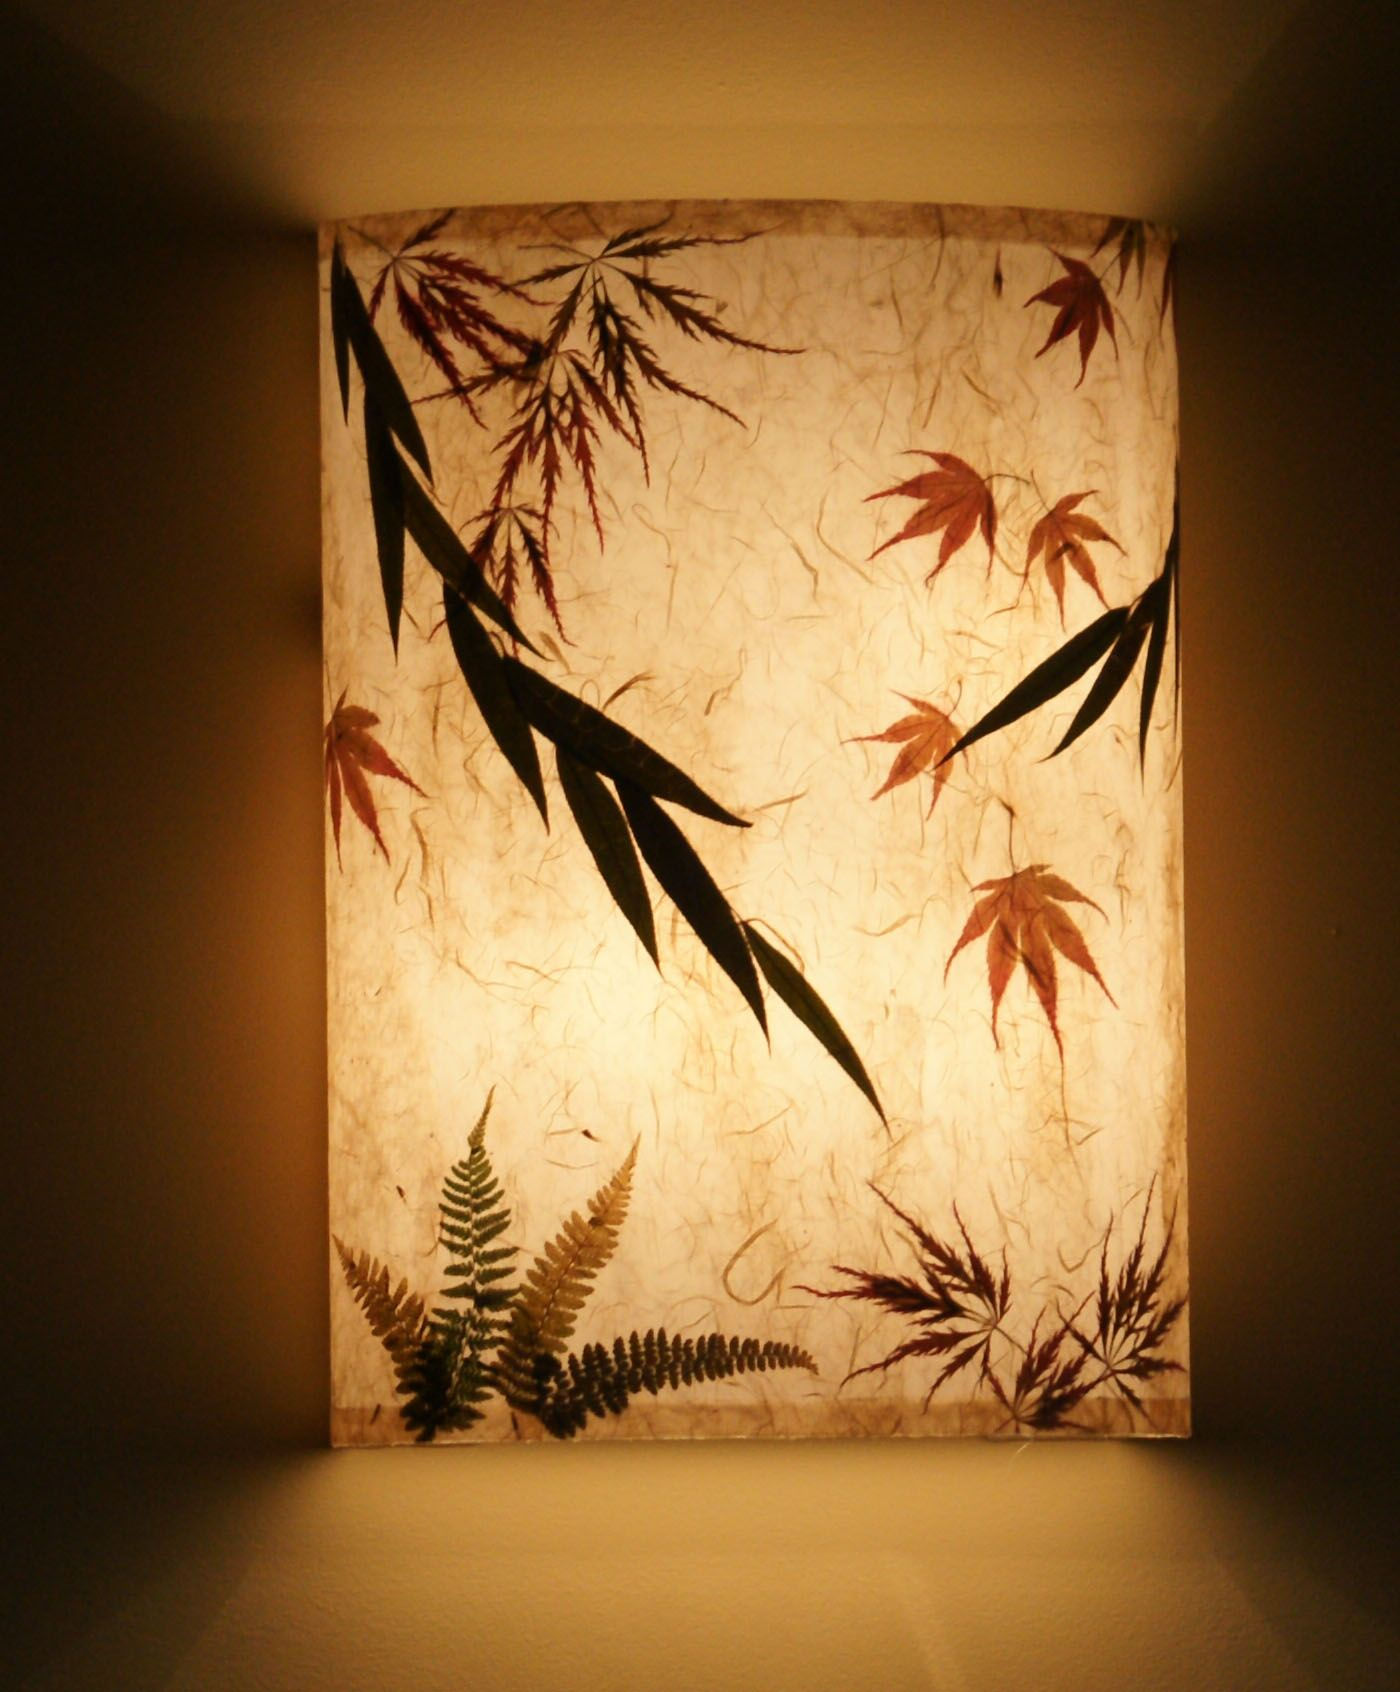 Gold Plug In Wall Sconce Sconces Living Room Lighting Direct Wiring A Light Ambientartcom Made To Order Specialty Papers Individually Pressed Leaves Custom Sizes For Or Available On Cord With